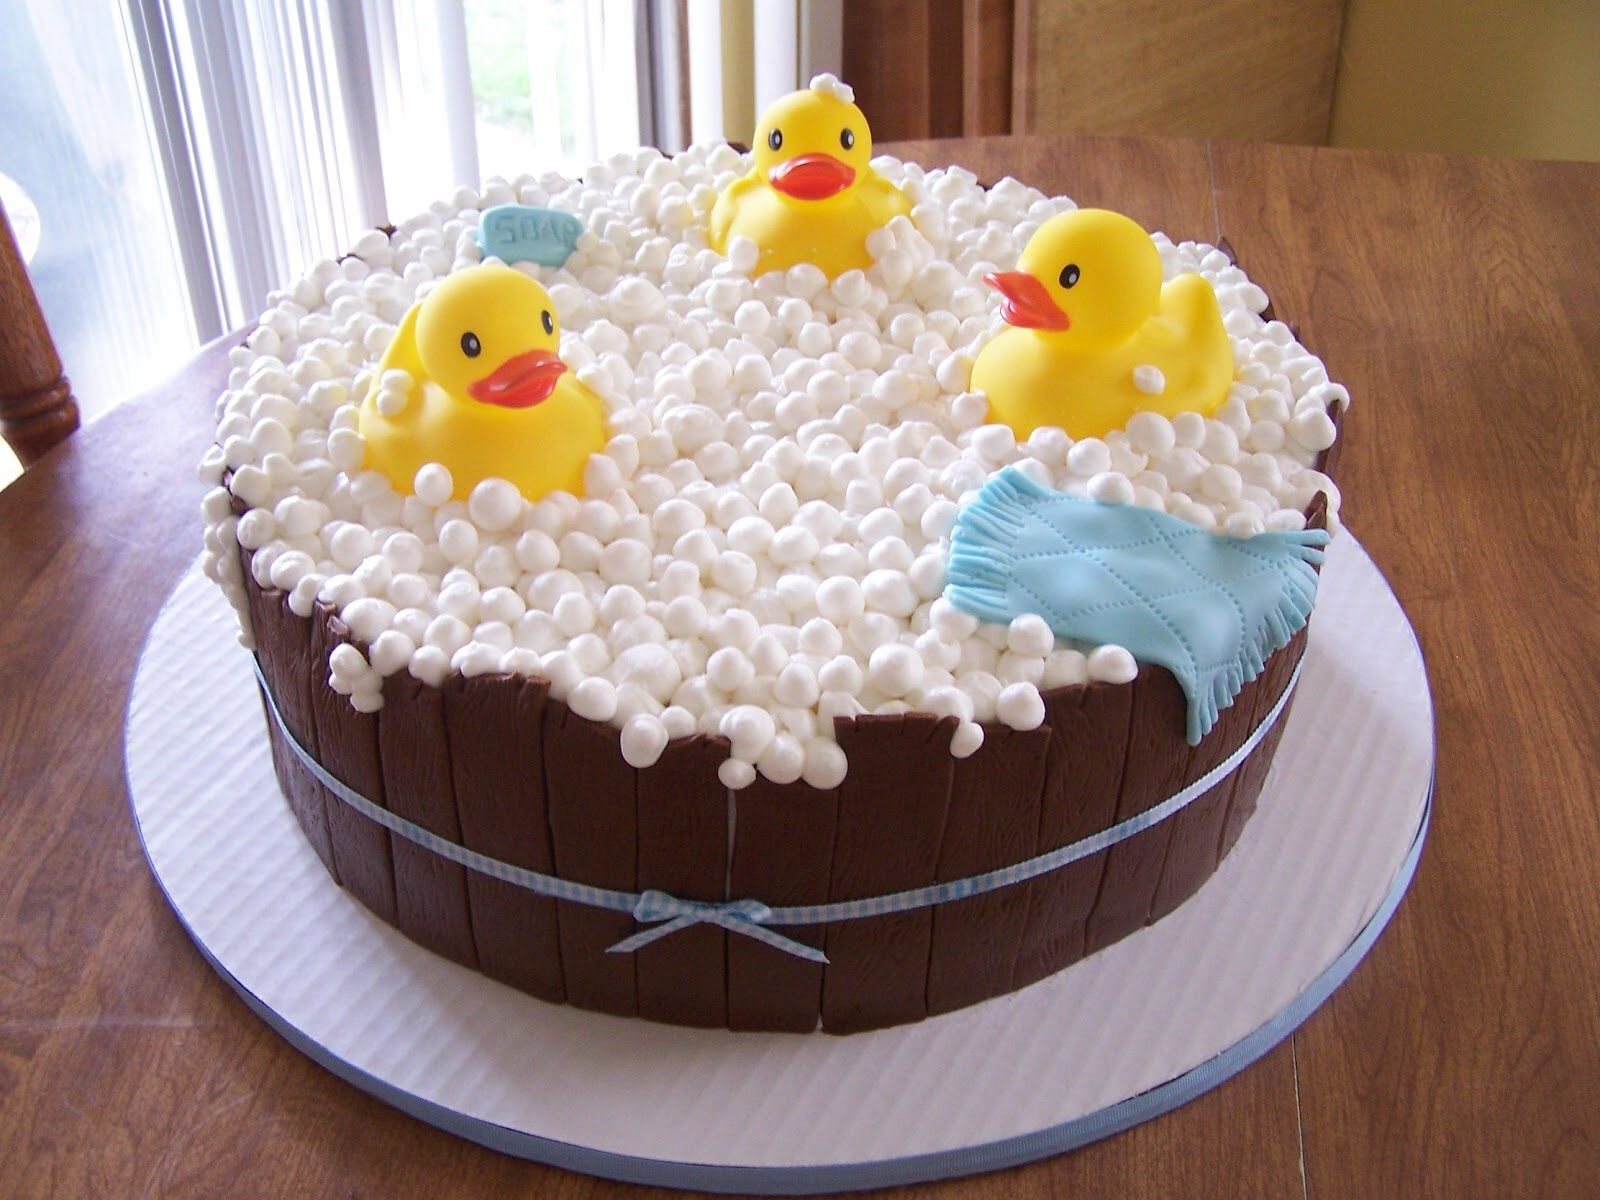 Cake decorating ideas pinterest - Healthy Edee S Custom Cakes Boy Rubber Ducky Baby Shower Baby Shower Cakes Cincinnati Suggestion And Rustic Baby Shower Cake Ideas For Baby Girl